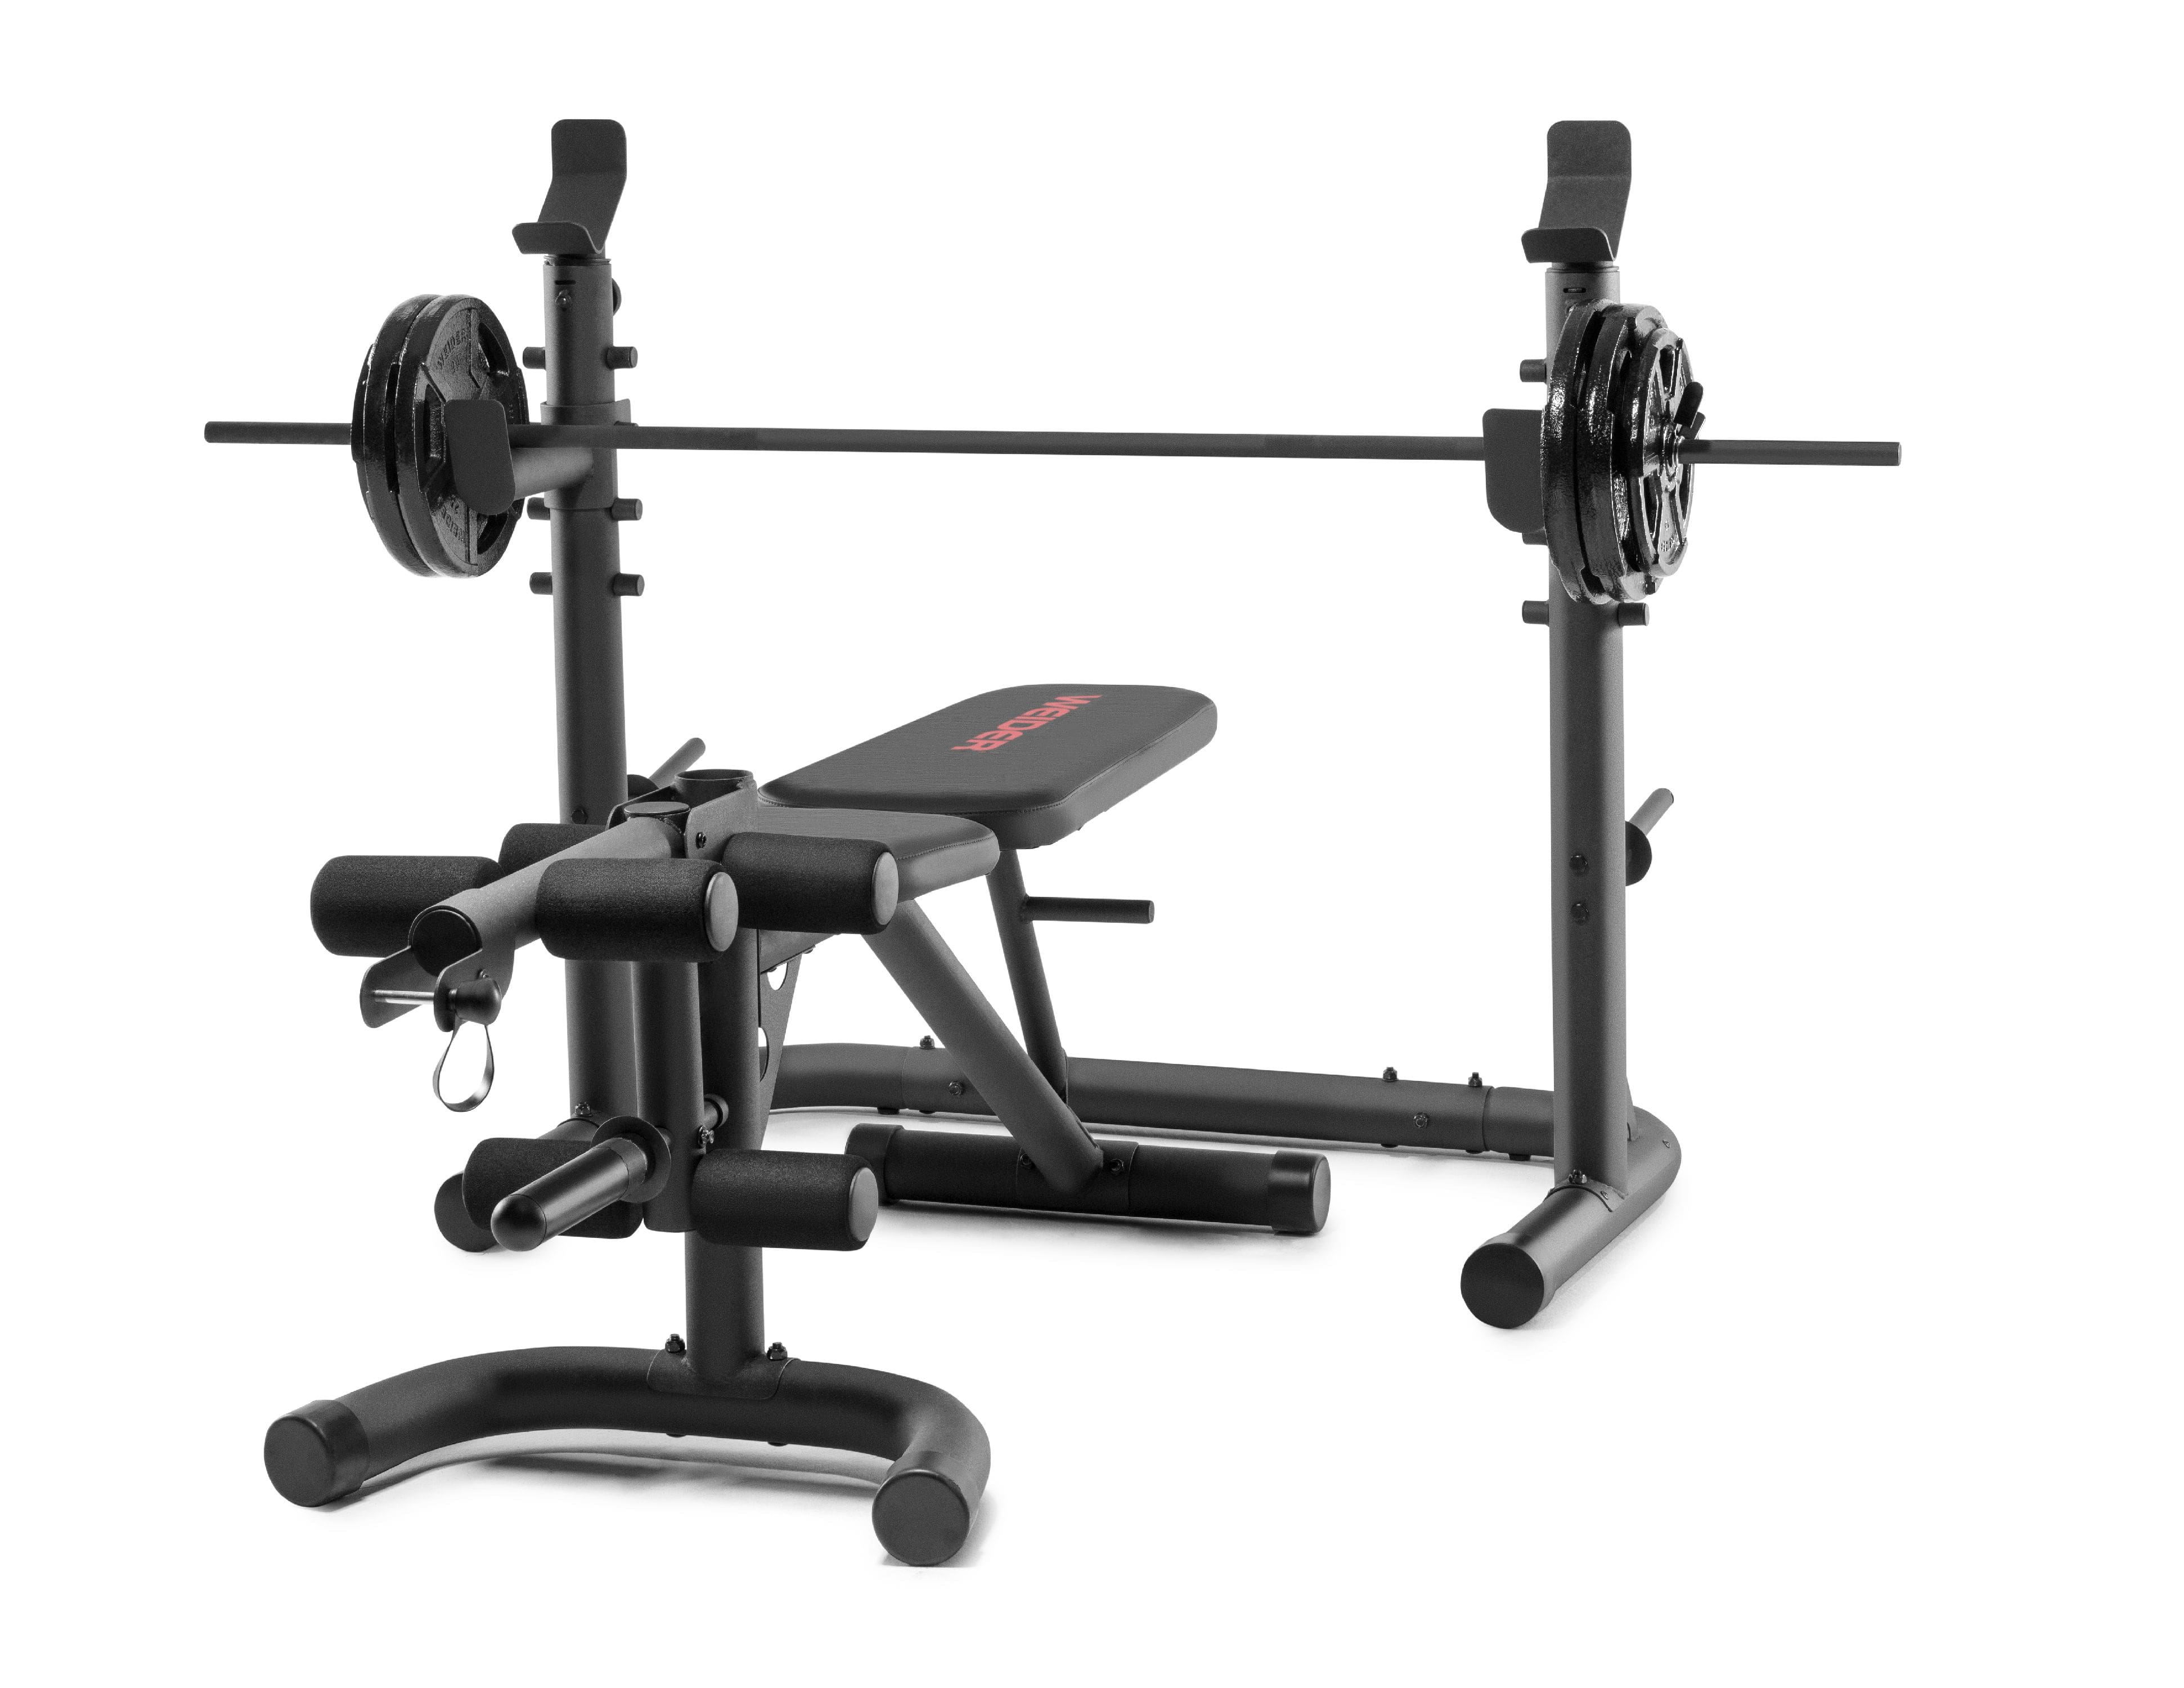 Weider XRS 20 Olympic Workout Bench with Independent Squat Rack and Preacher Pad $199.99